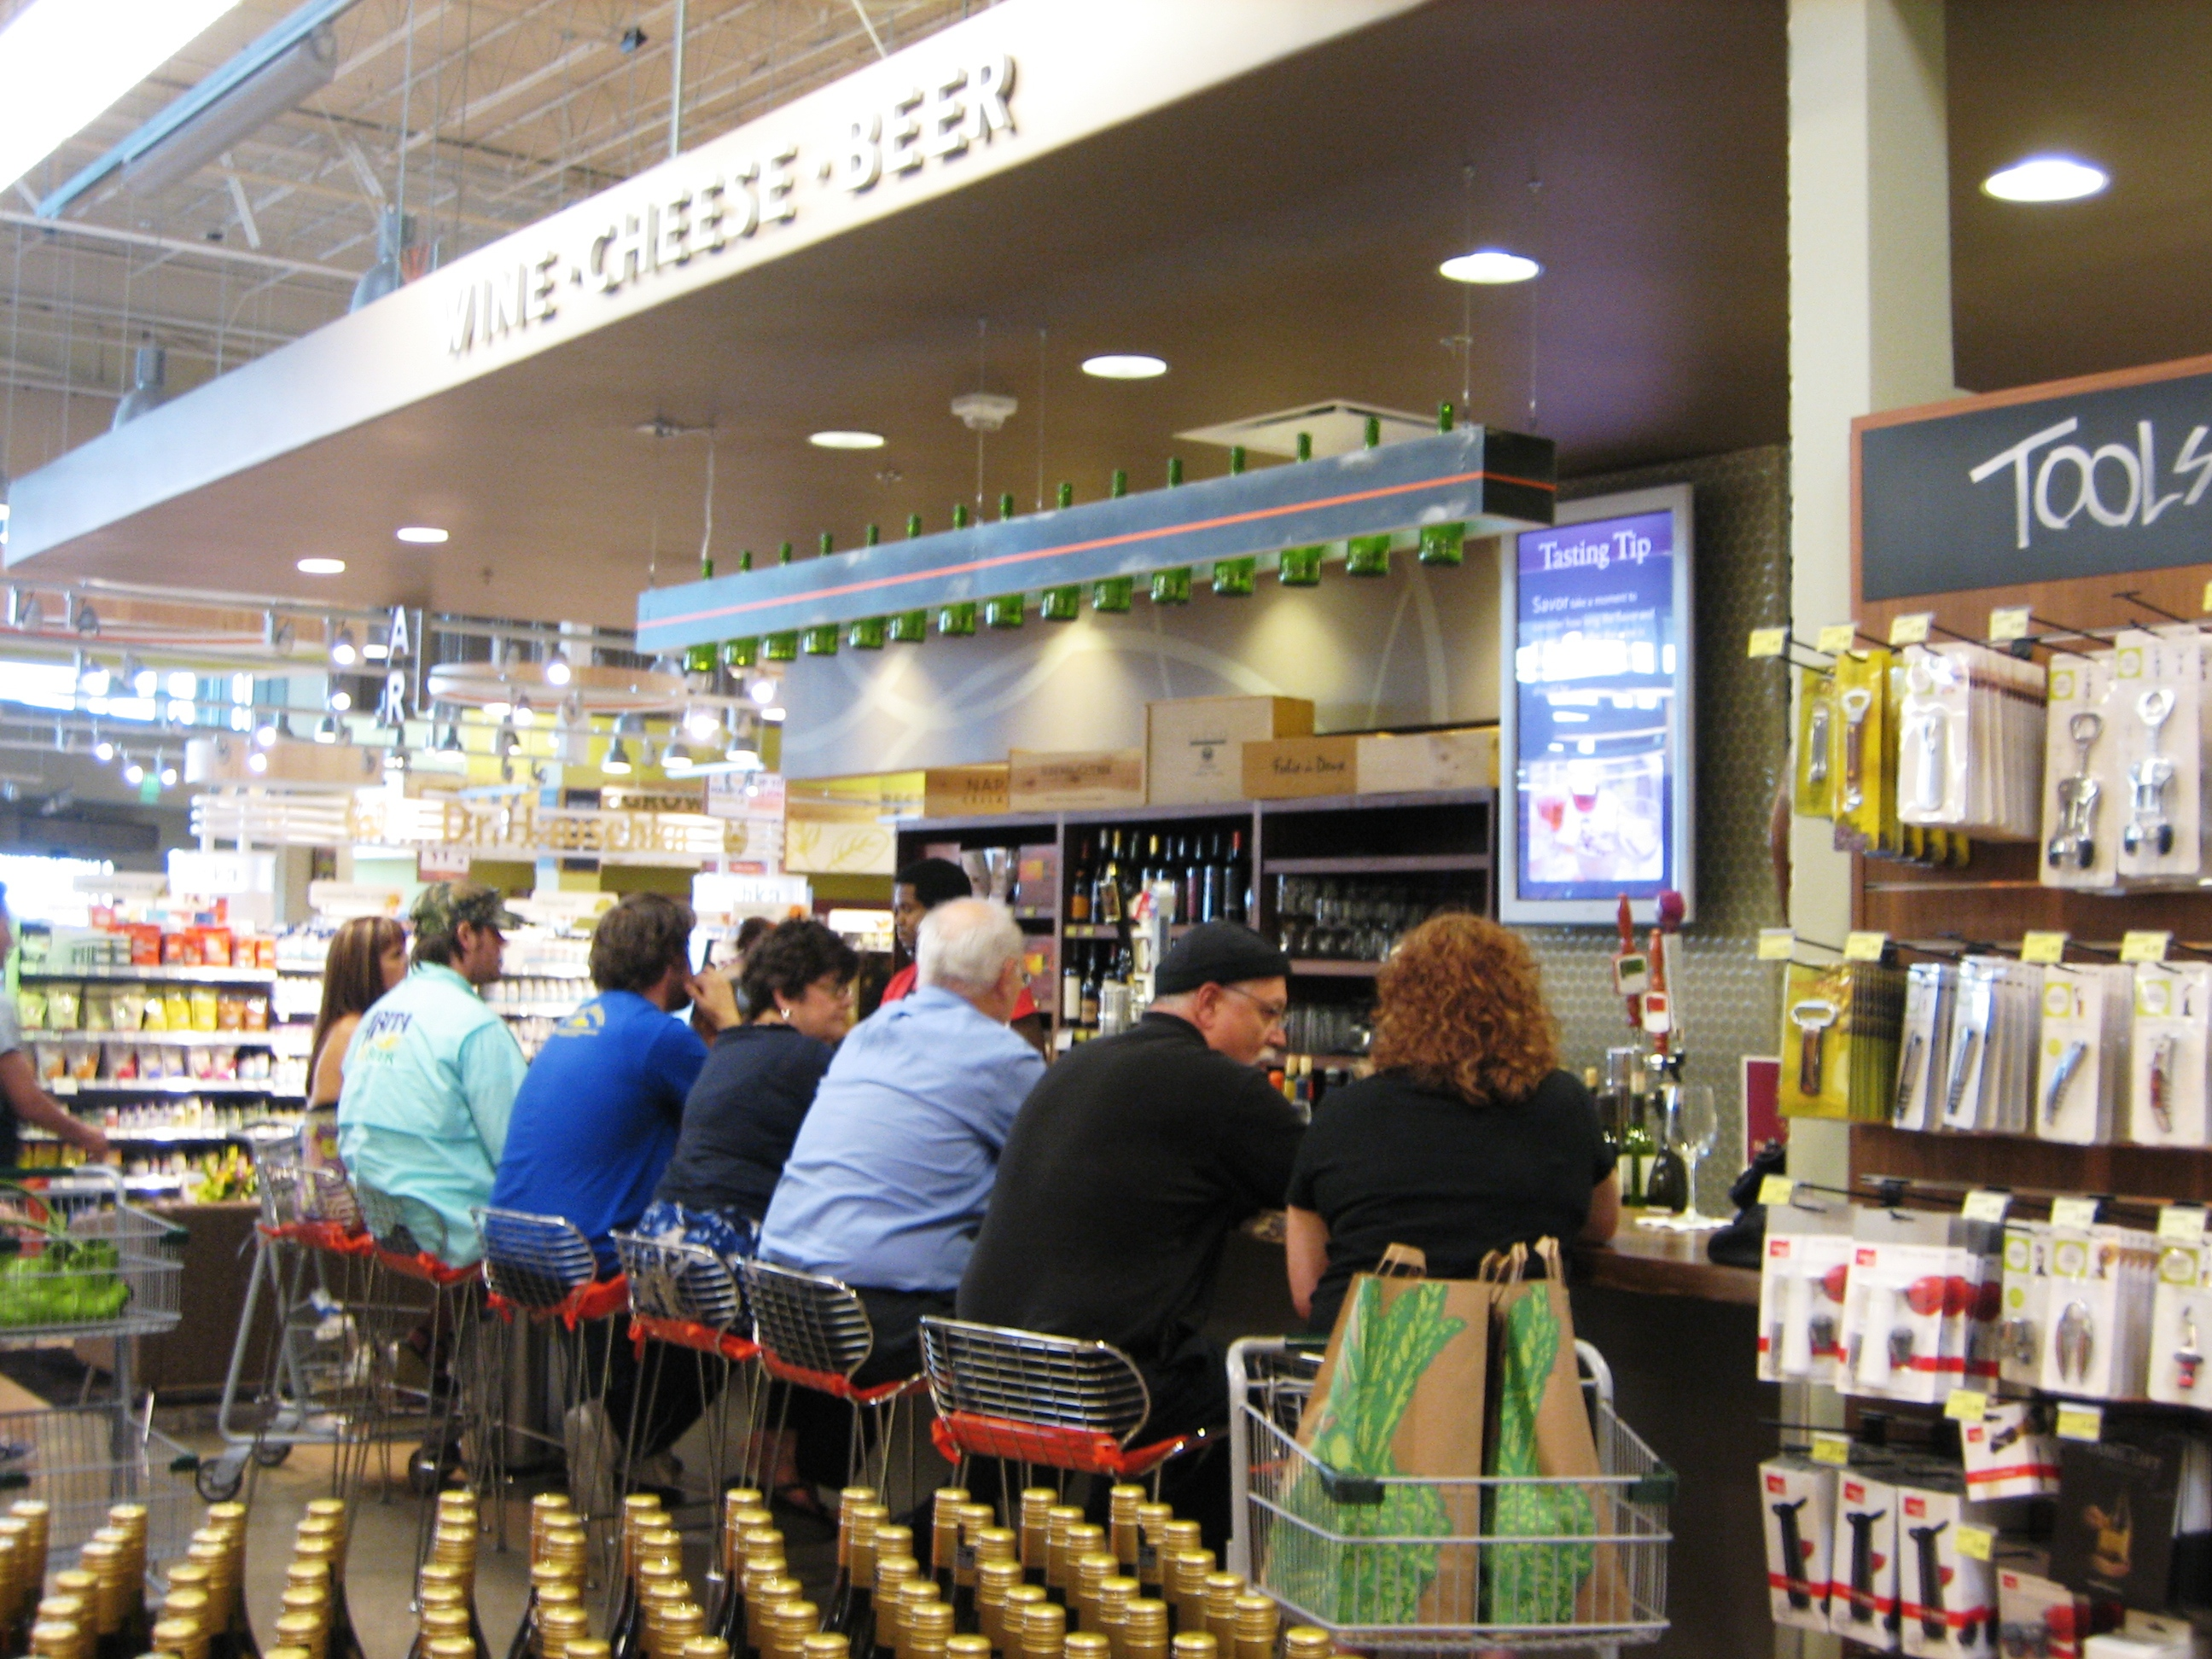 The Park Lane Whole Foods bar is a delicious experiment - Preston Hollow